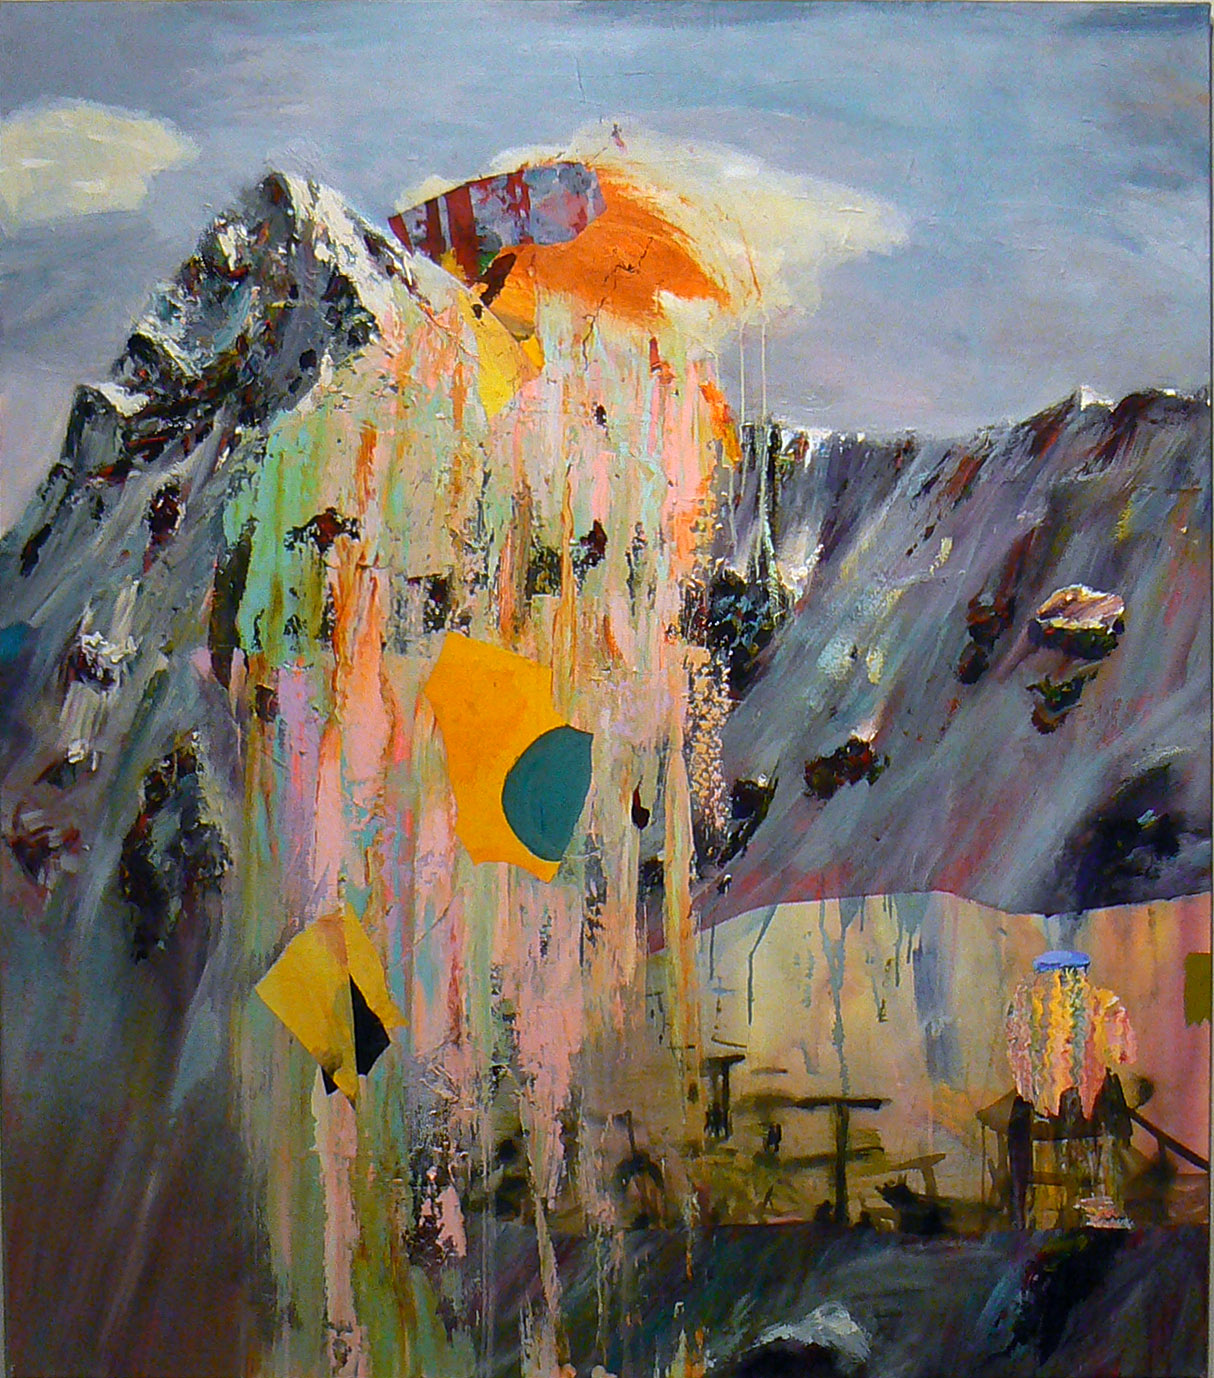 Judith Simonian,  Ski Lift , 2012-2013, Acrylic, collage on canvas, 66h x 58w in.